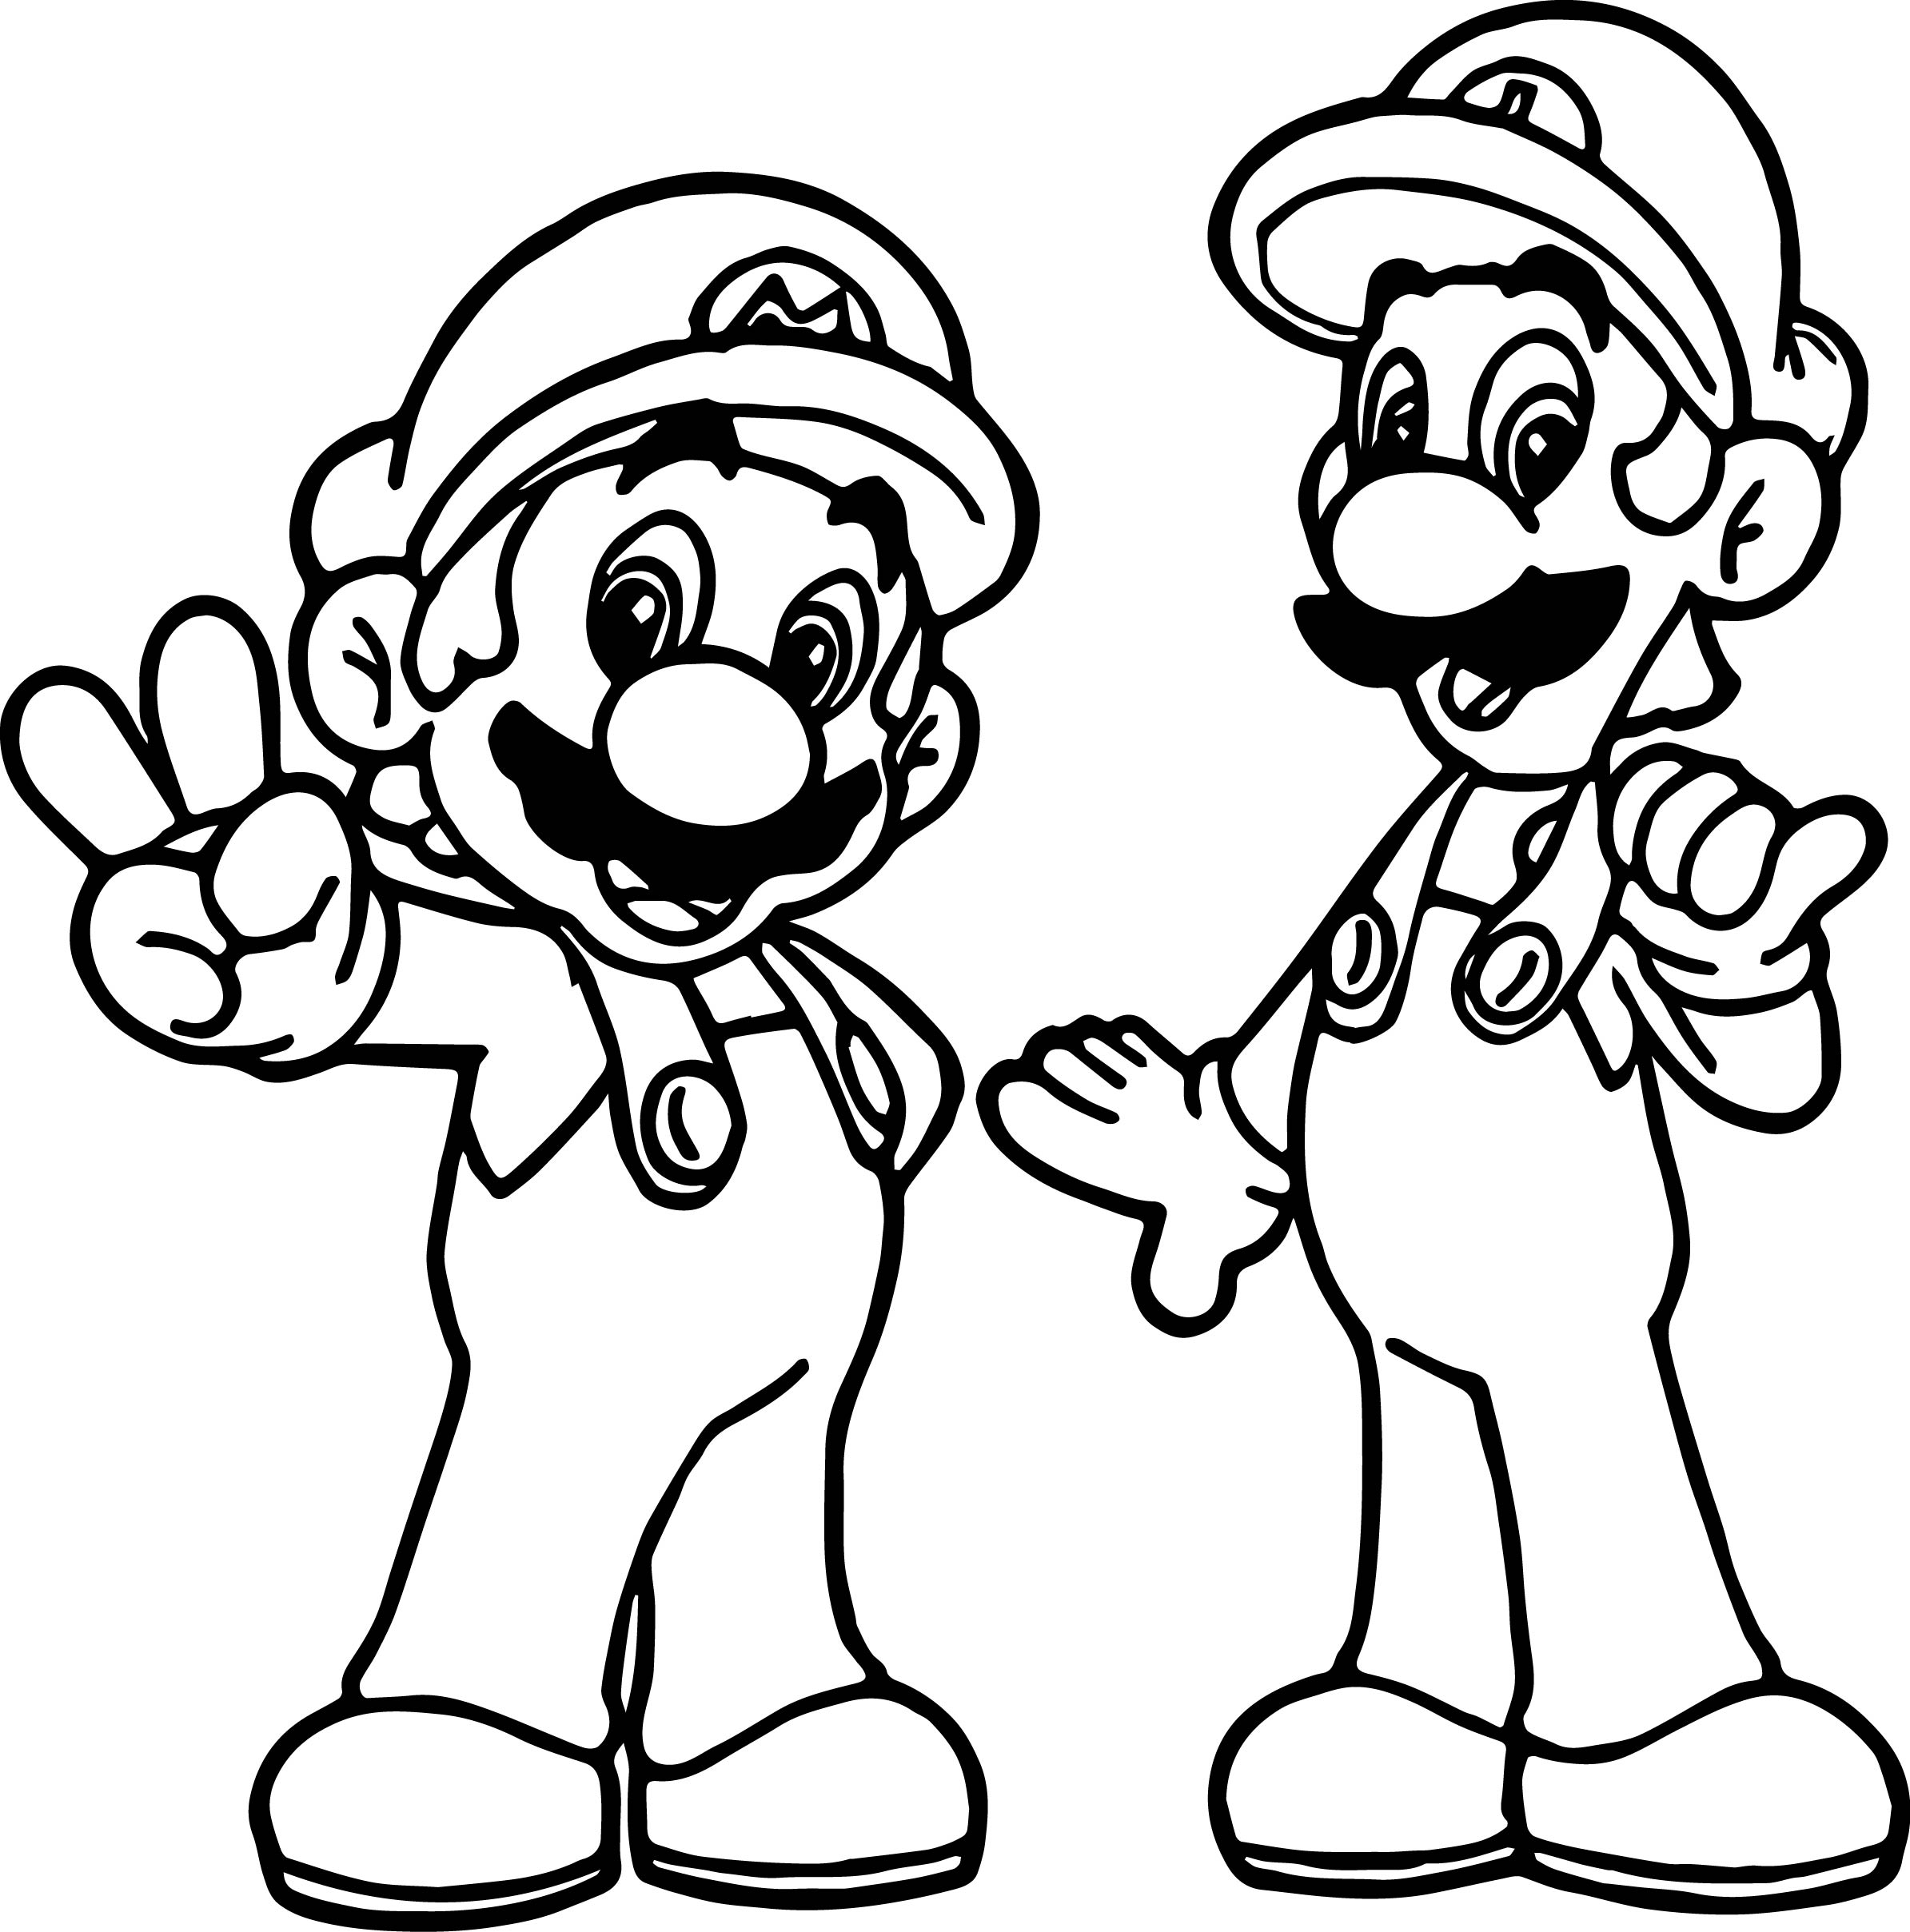 free printable super mario coloring pages printable coloring pages mario coloring home free coloring super printable mario pages